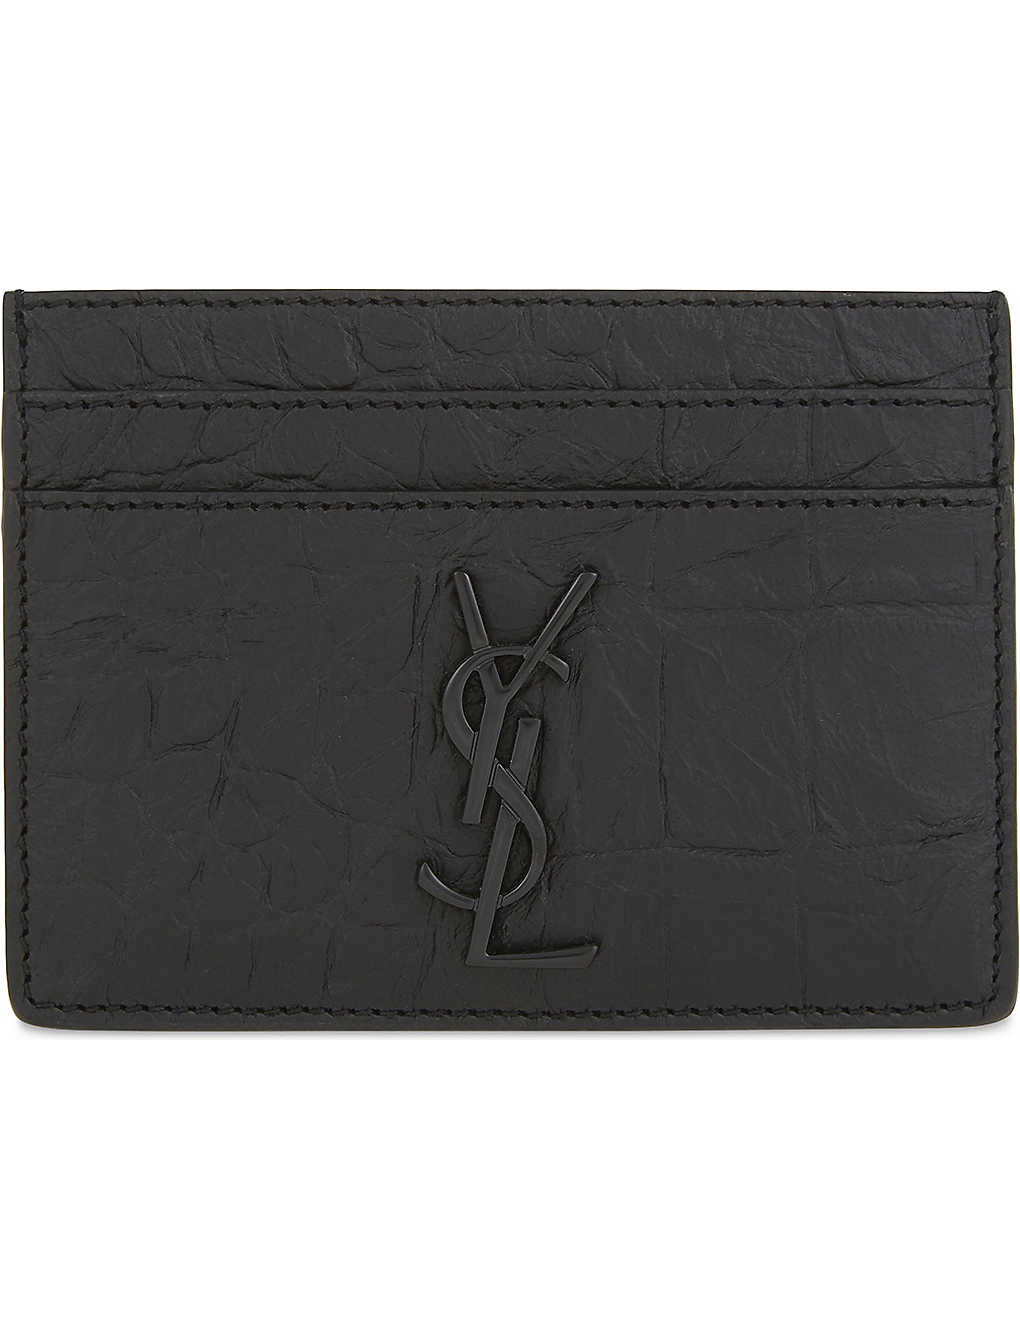 37b89e777b8 SAINT LAURENT - Monogram crocodile-embossed leather card holder ...